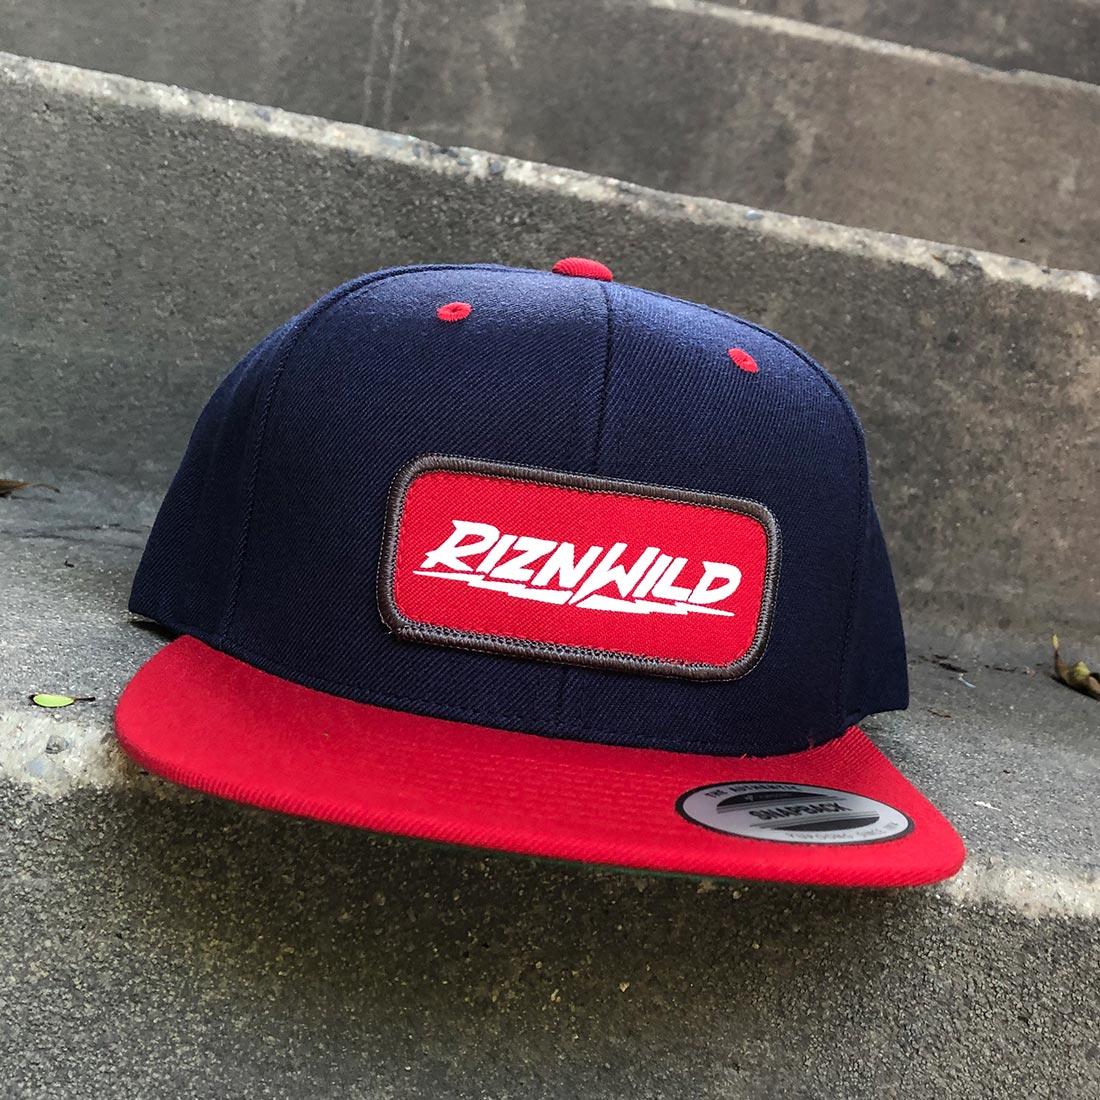 RIZNWILD | Red White and Grey patch on a flex fit hat